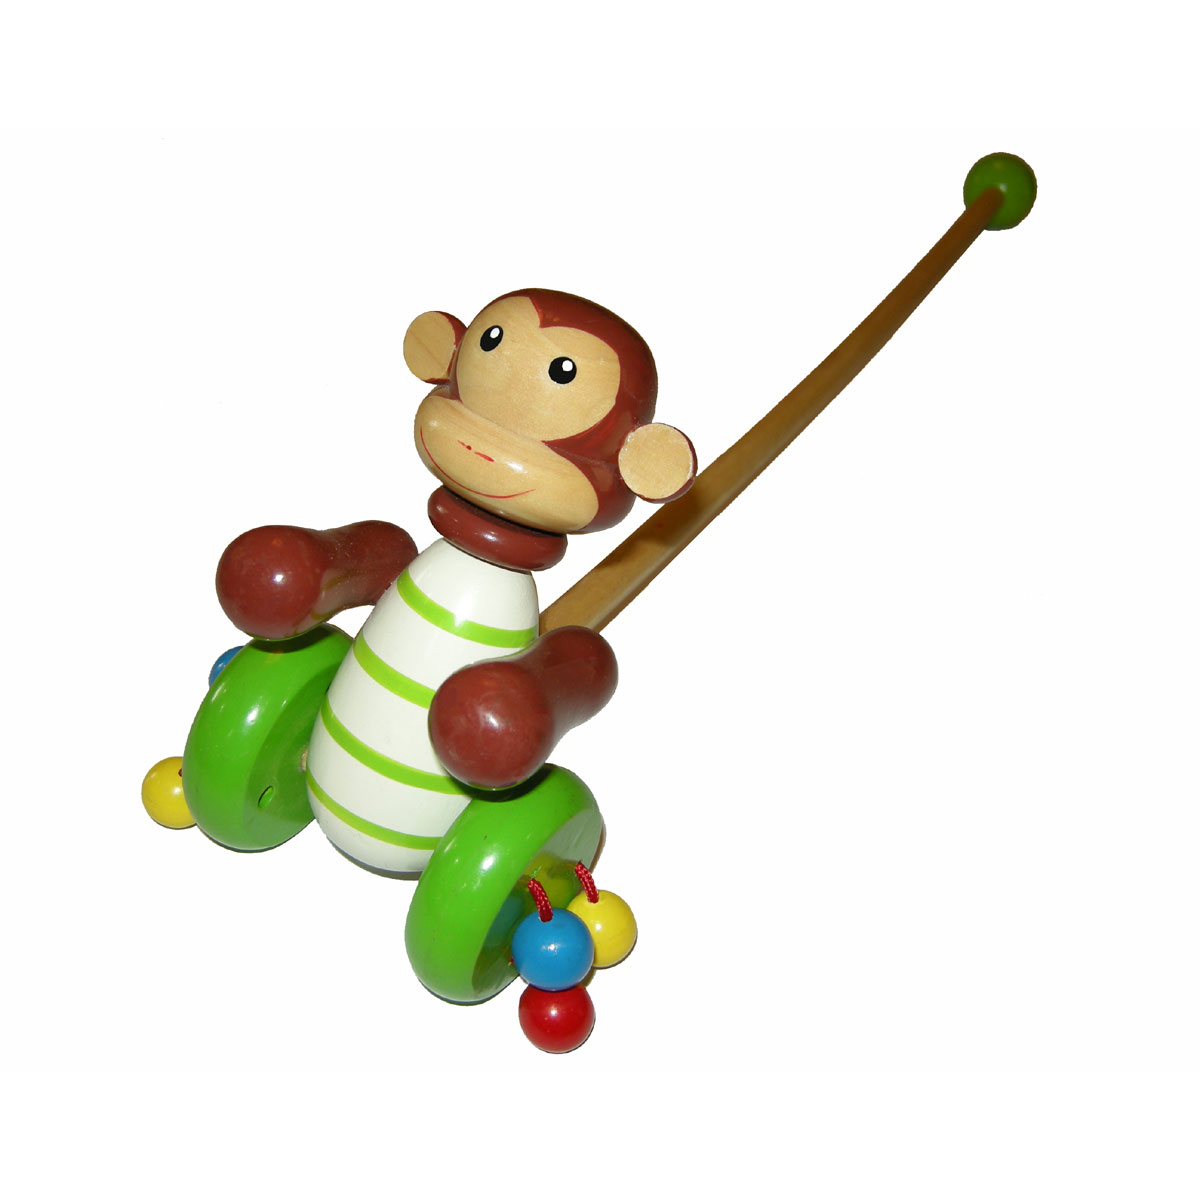 Wooden monkey push-a-long